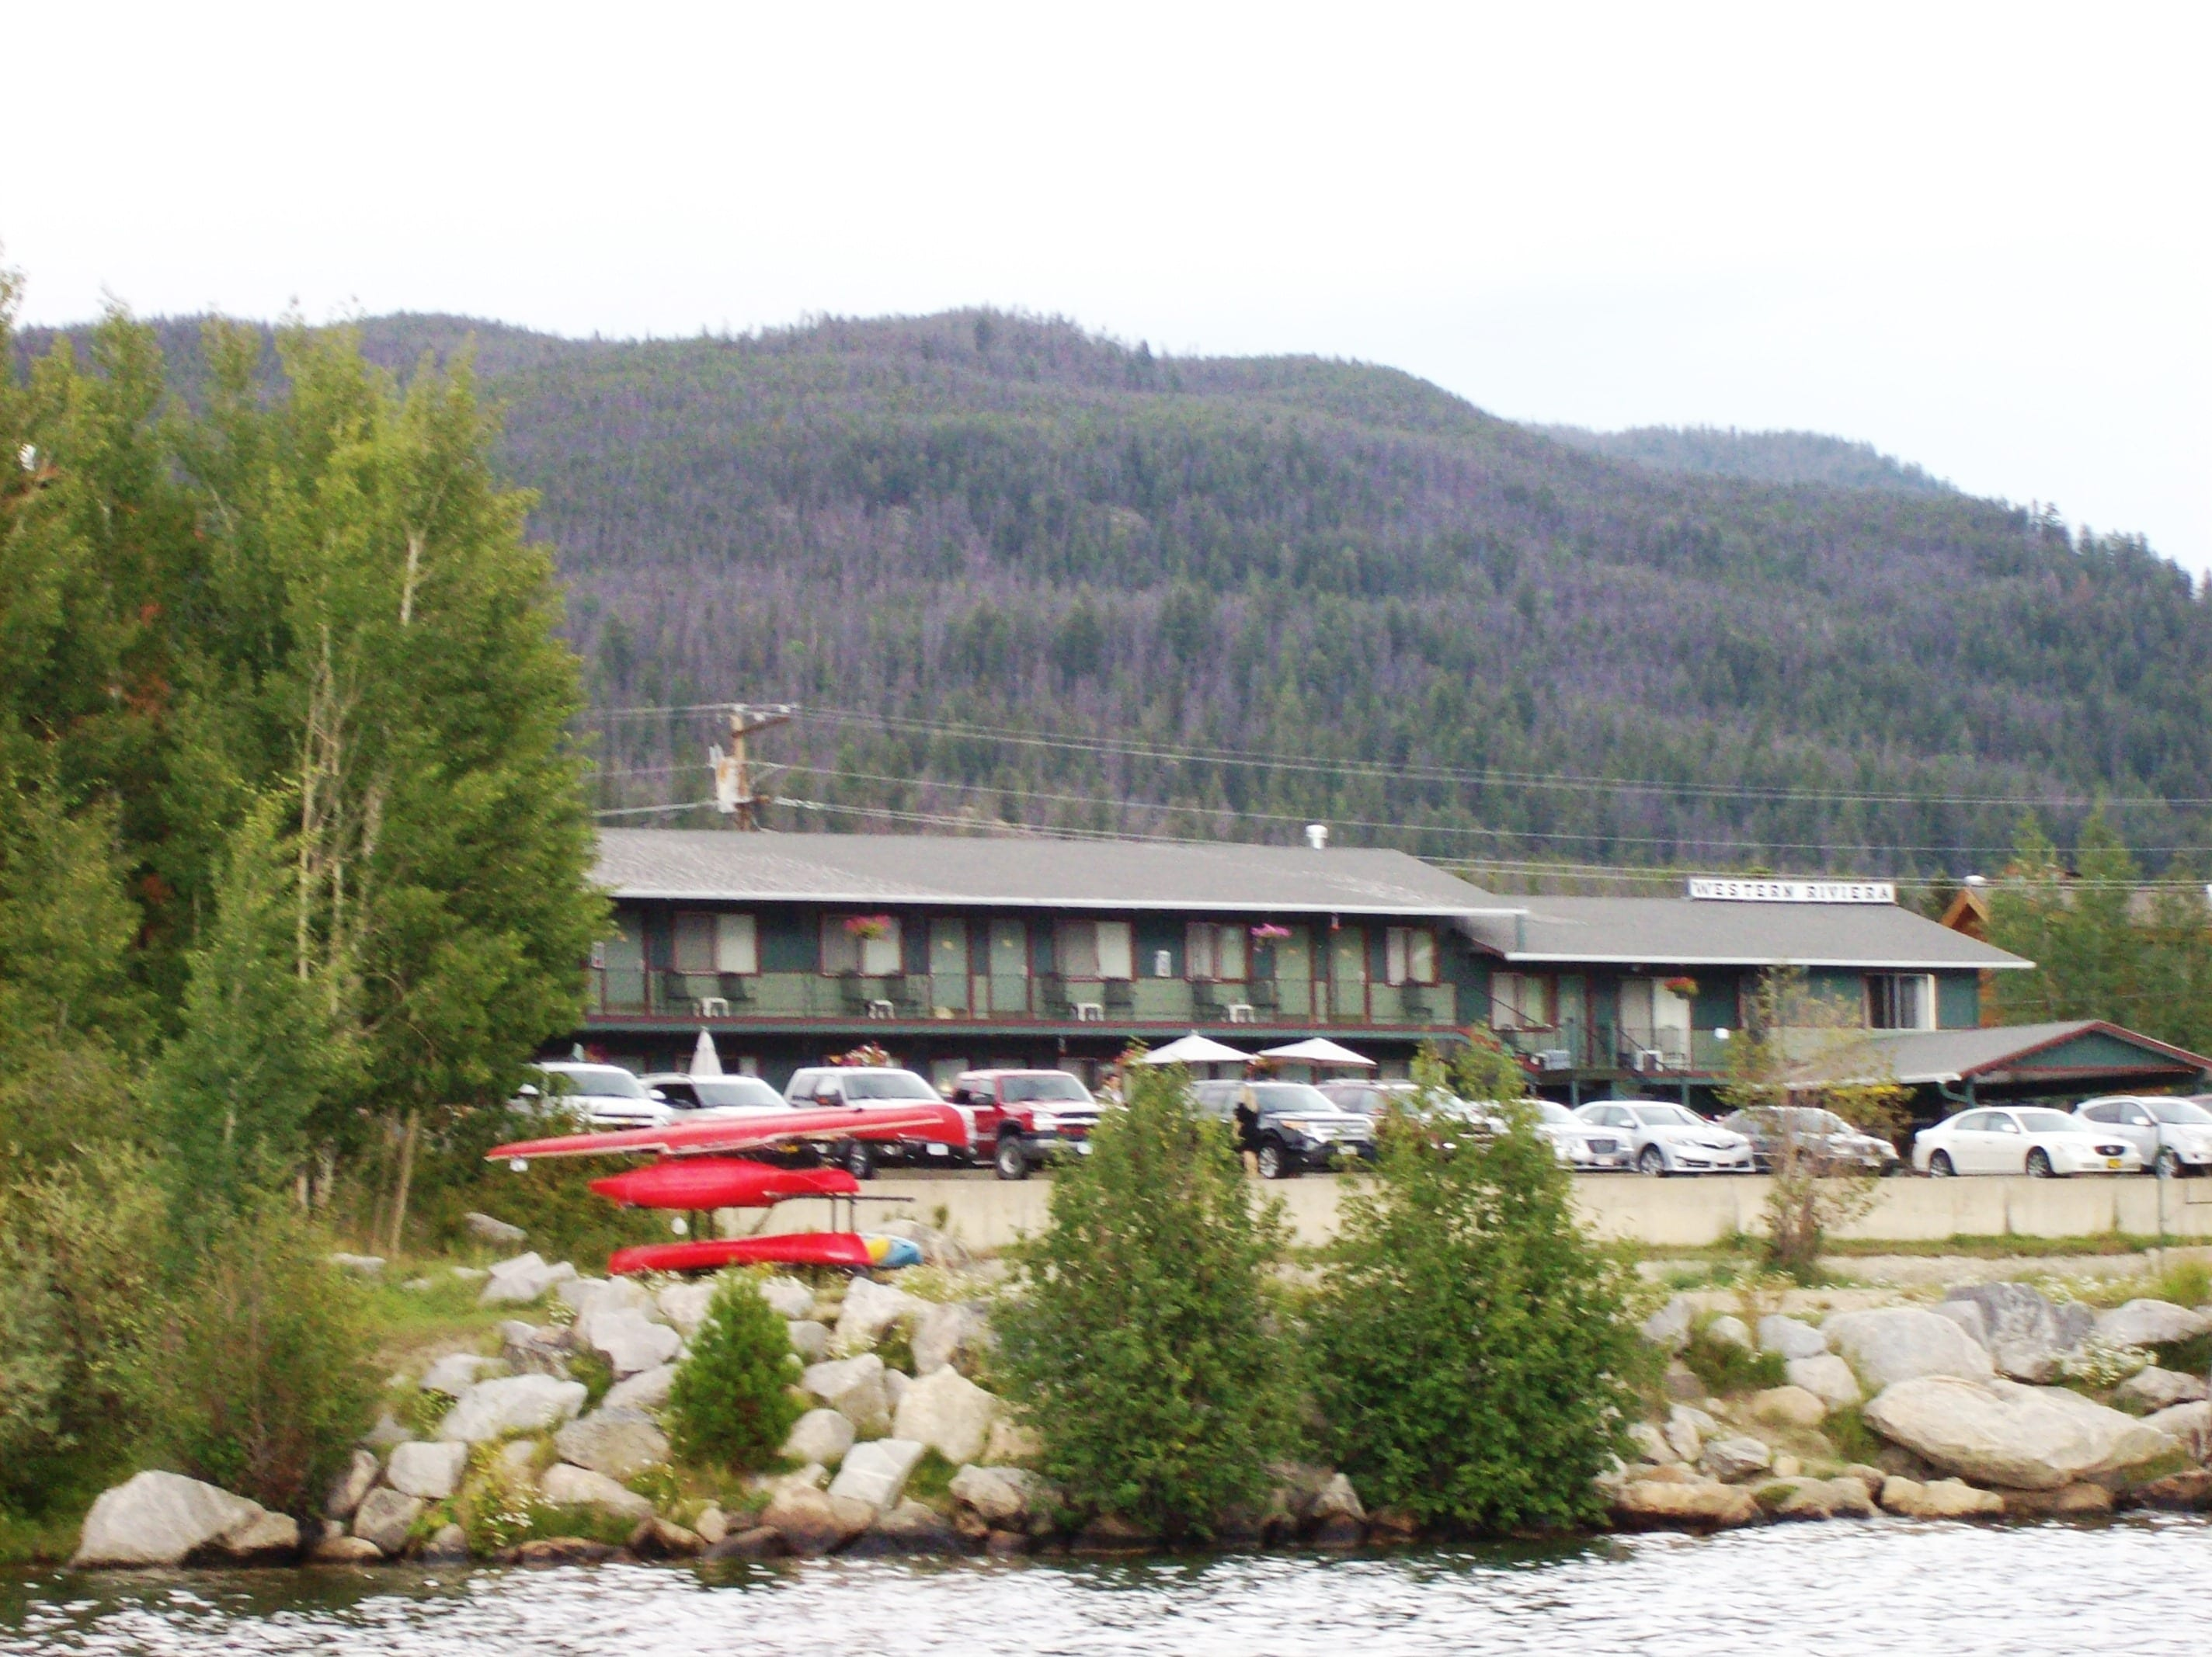 Western Riviera Lakeside Motel Overlooking Grand Lake, Colorado